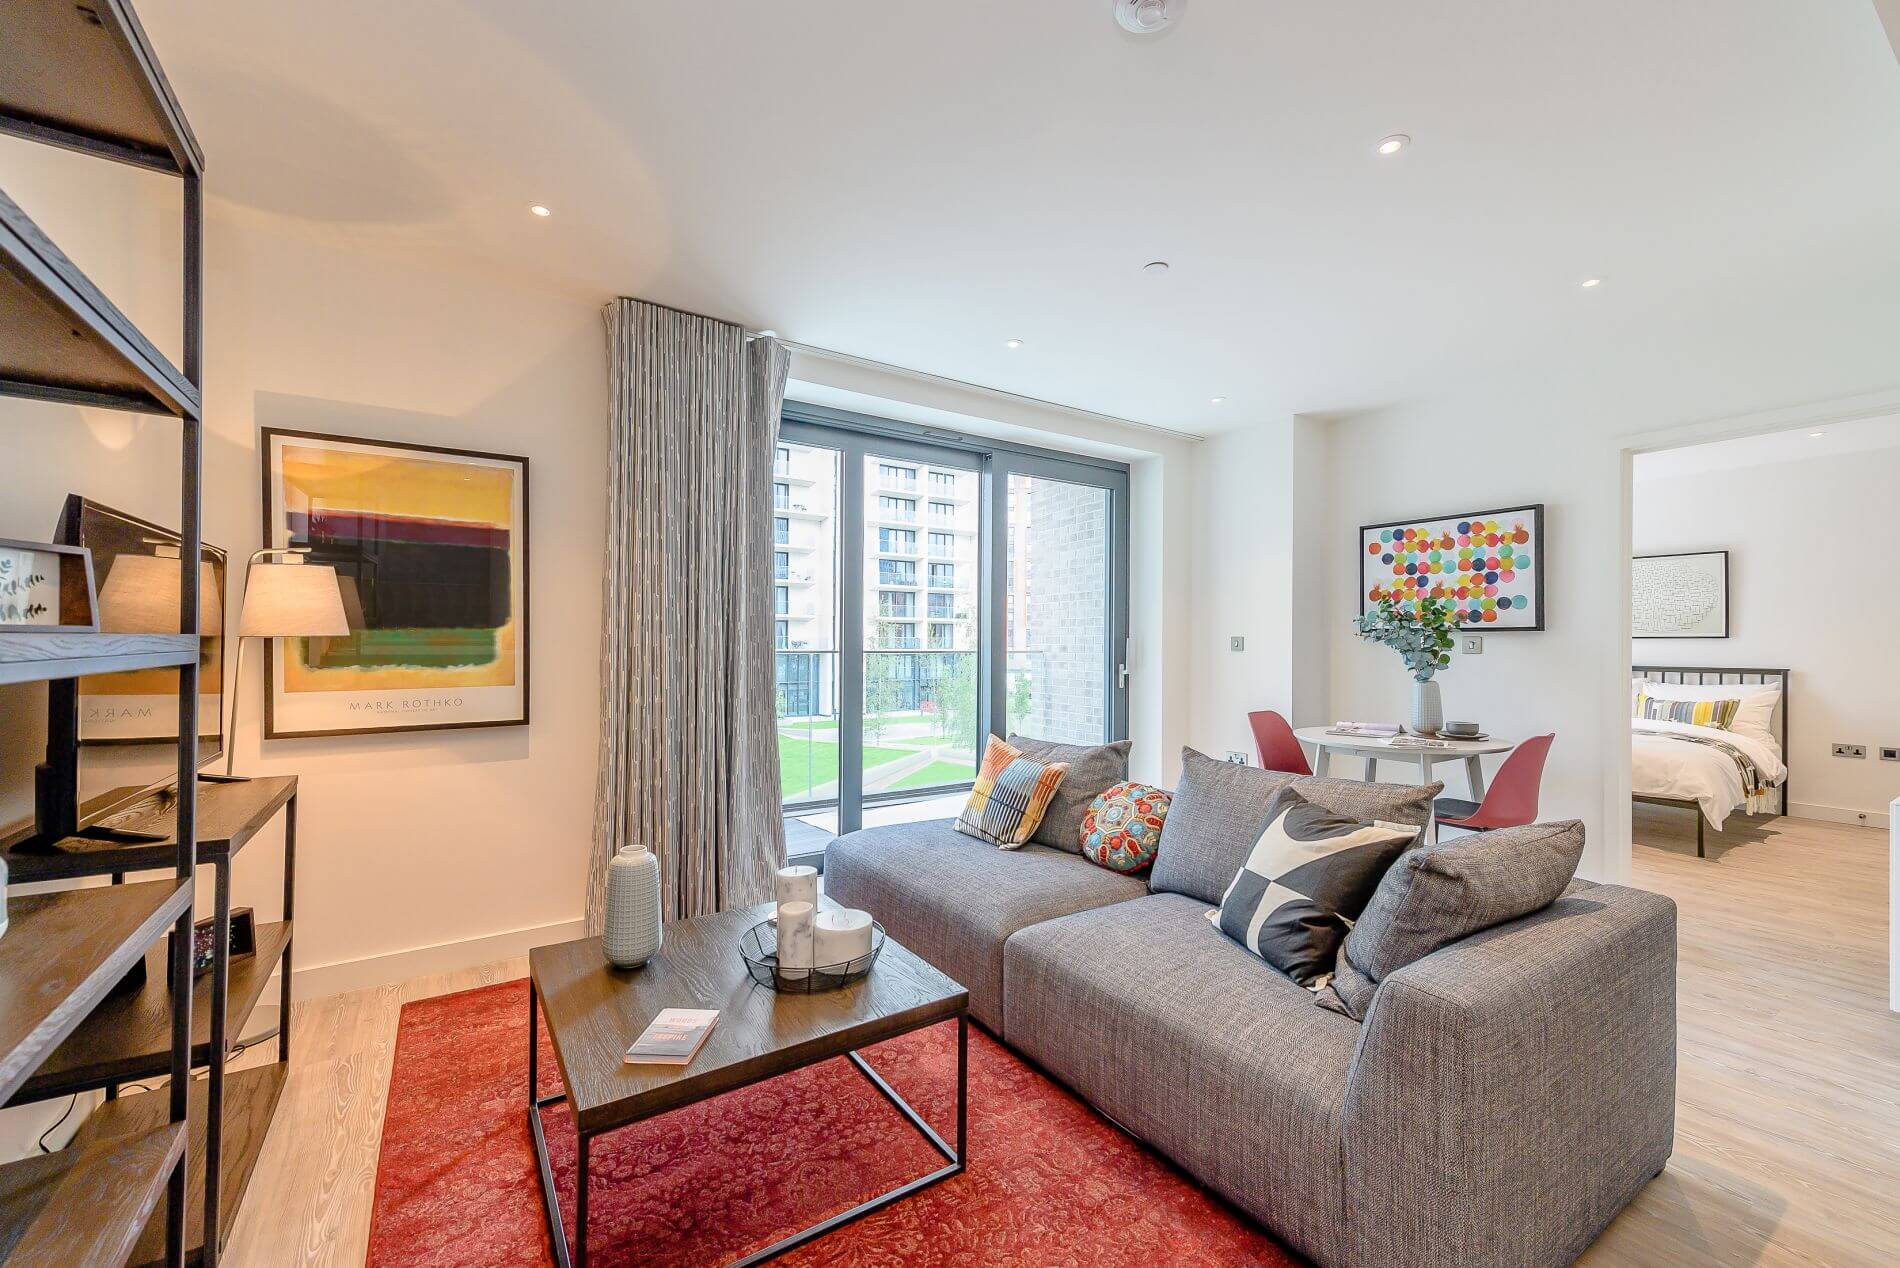 3 bedroom serviced apartment in Wembley, London for short stays